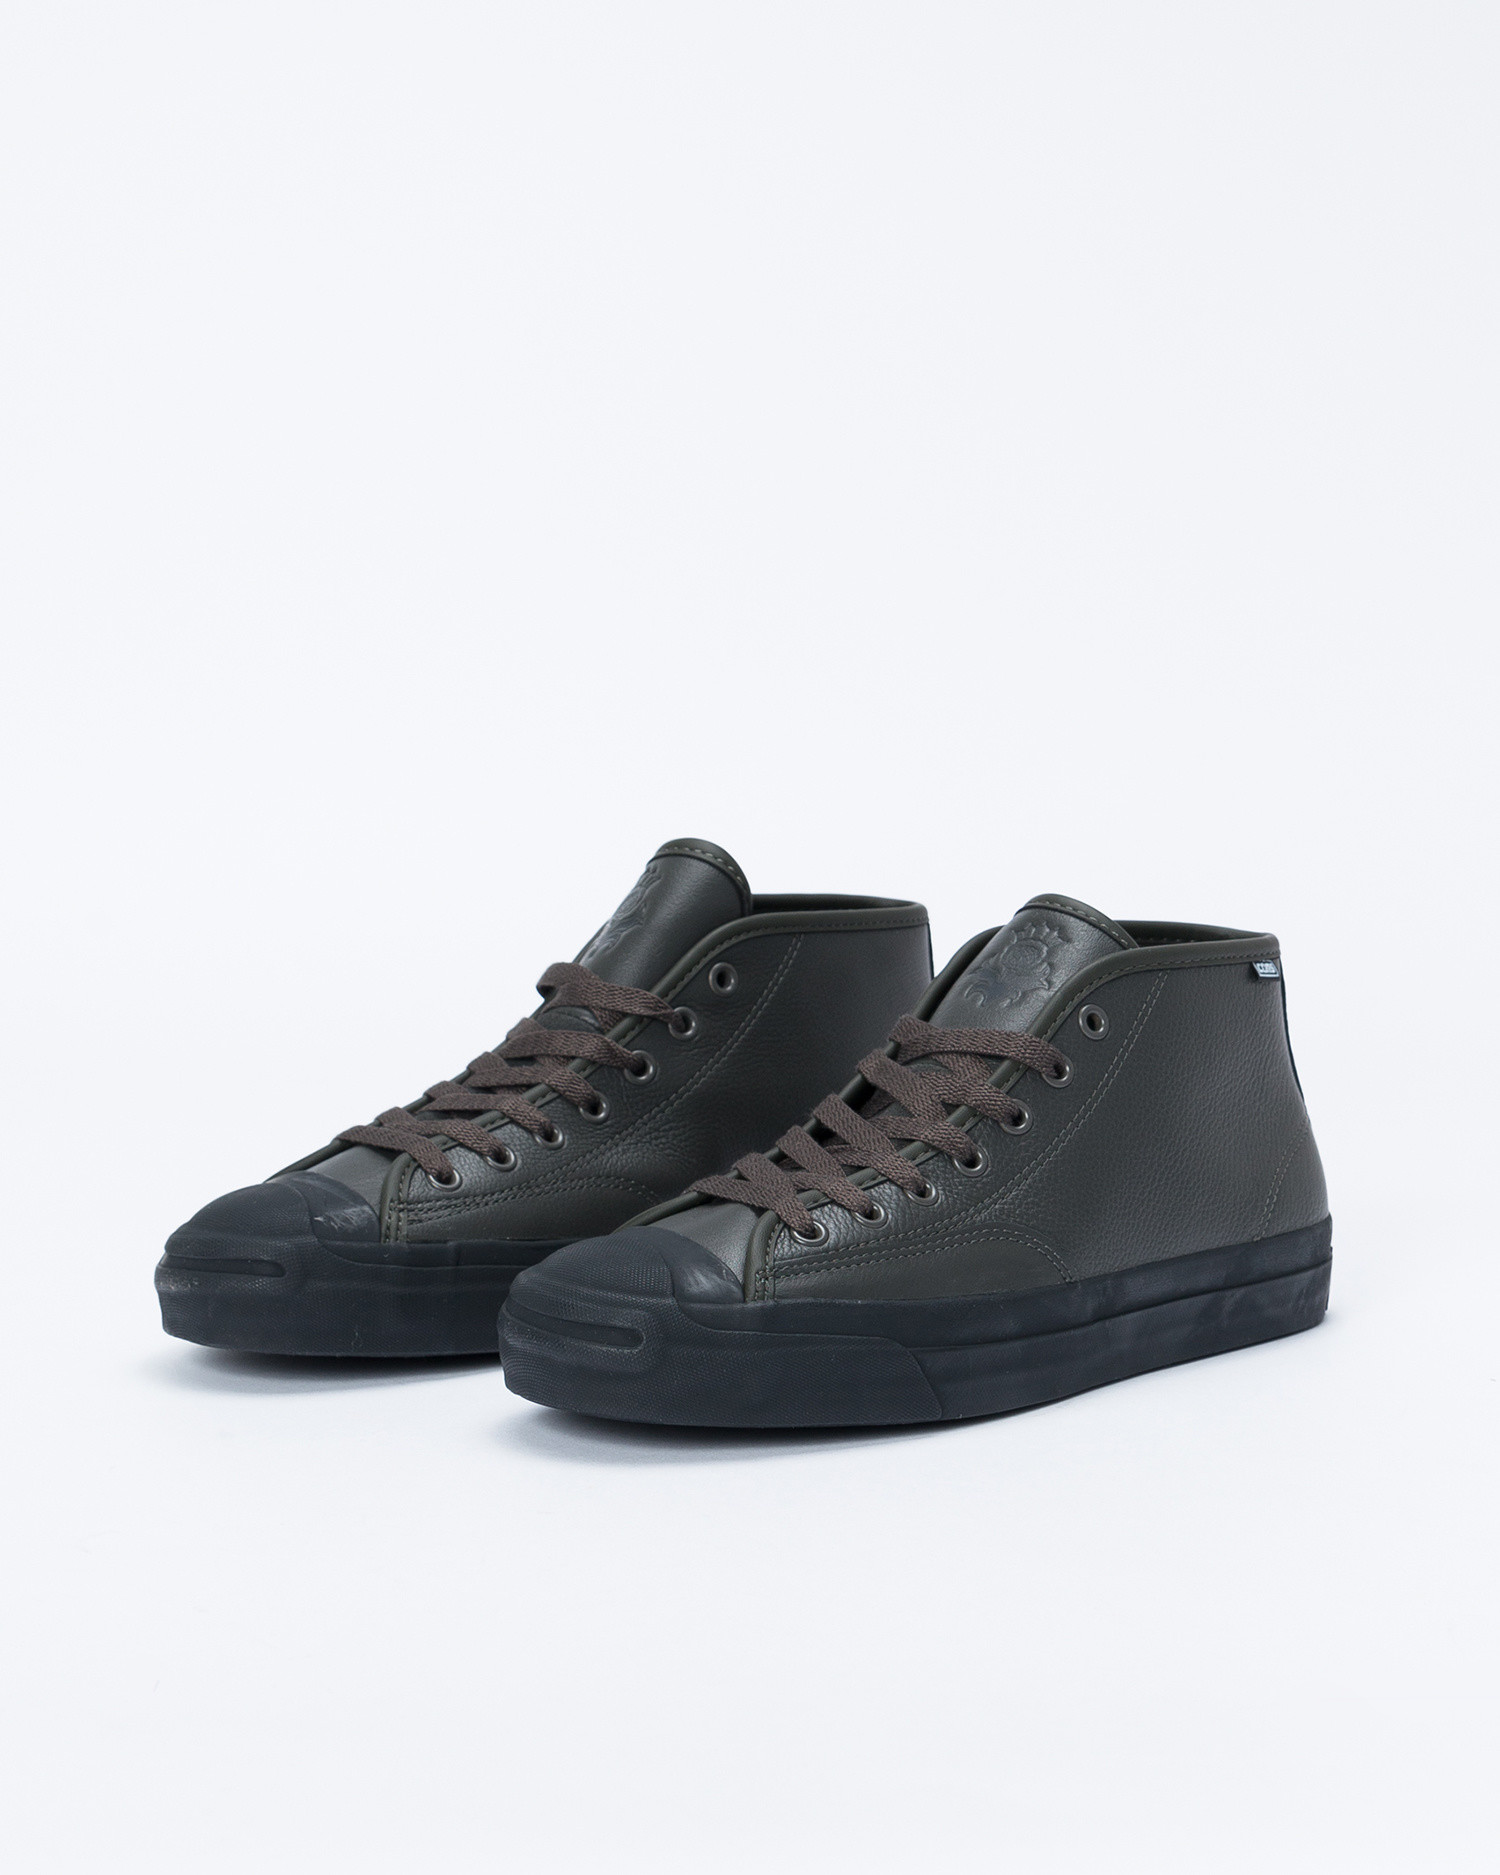 Converse Jack Purcell Pro Leather Mid Beluga/Black/Black